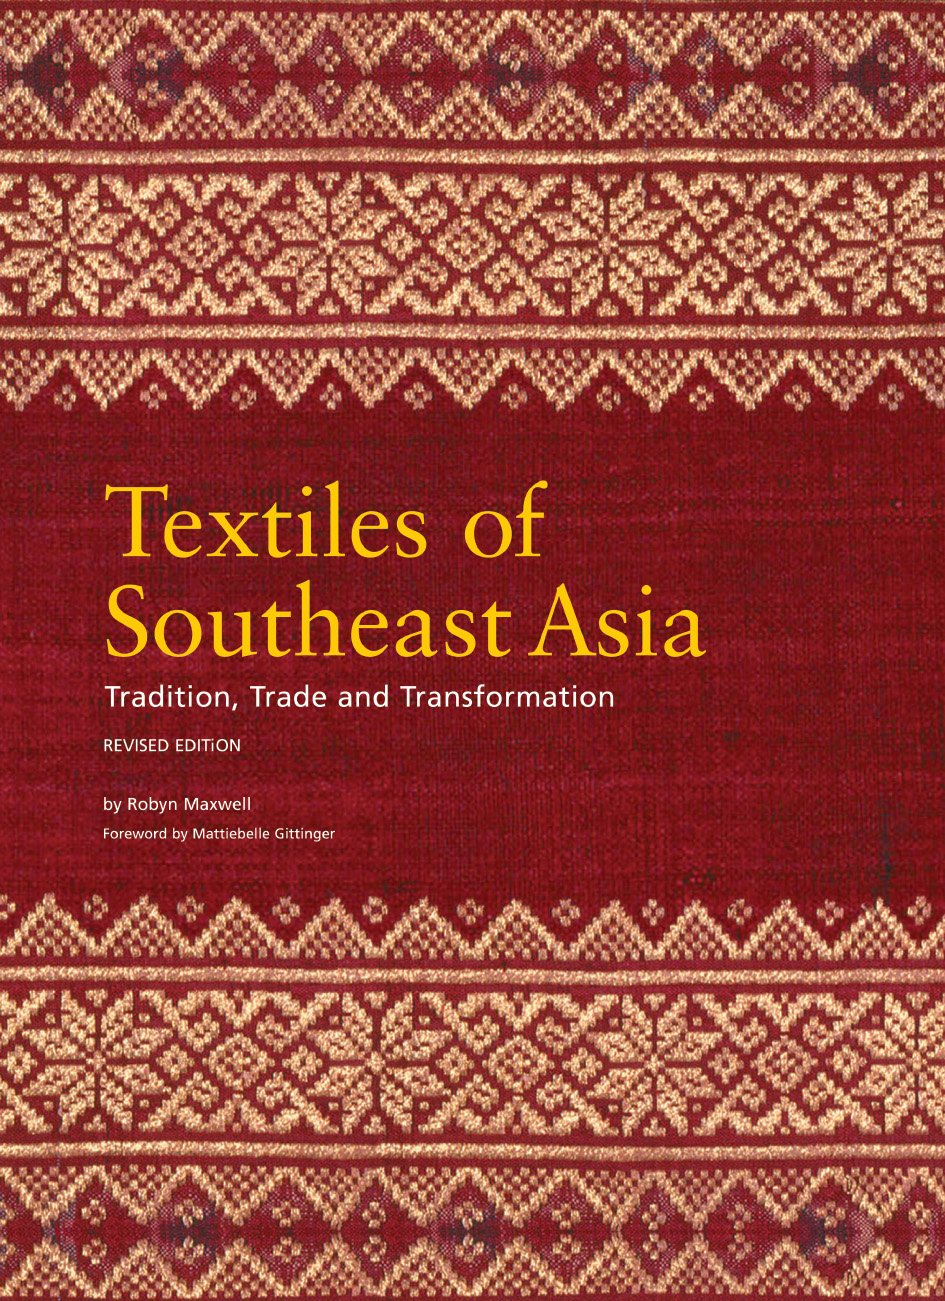 Download Textiles of Southeast Asia: Tradition, Trade and Transformation PDF